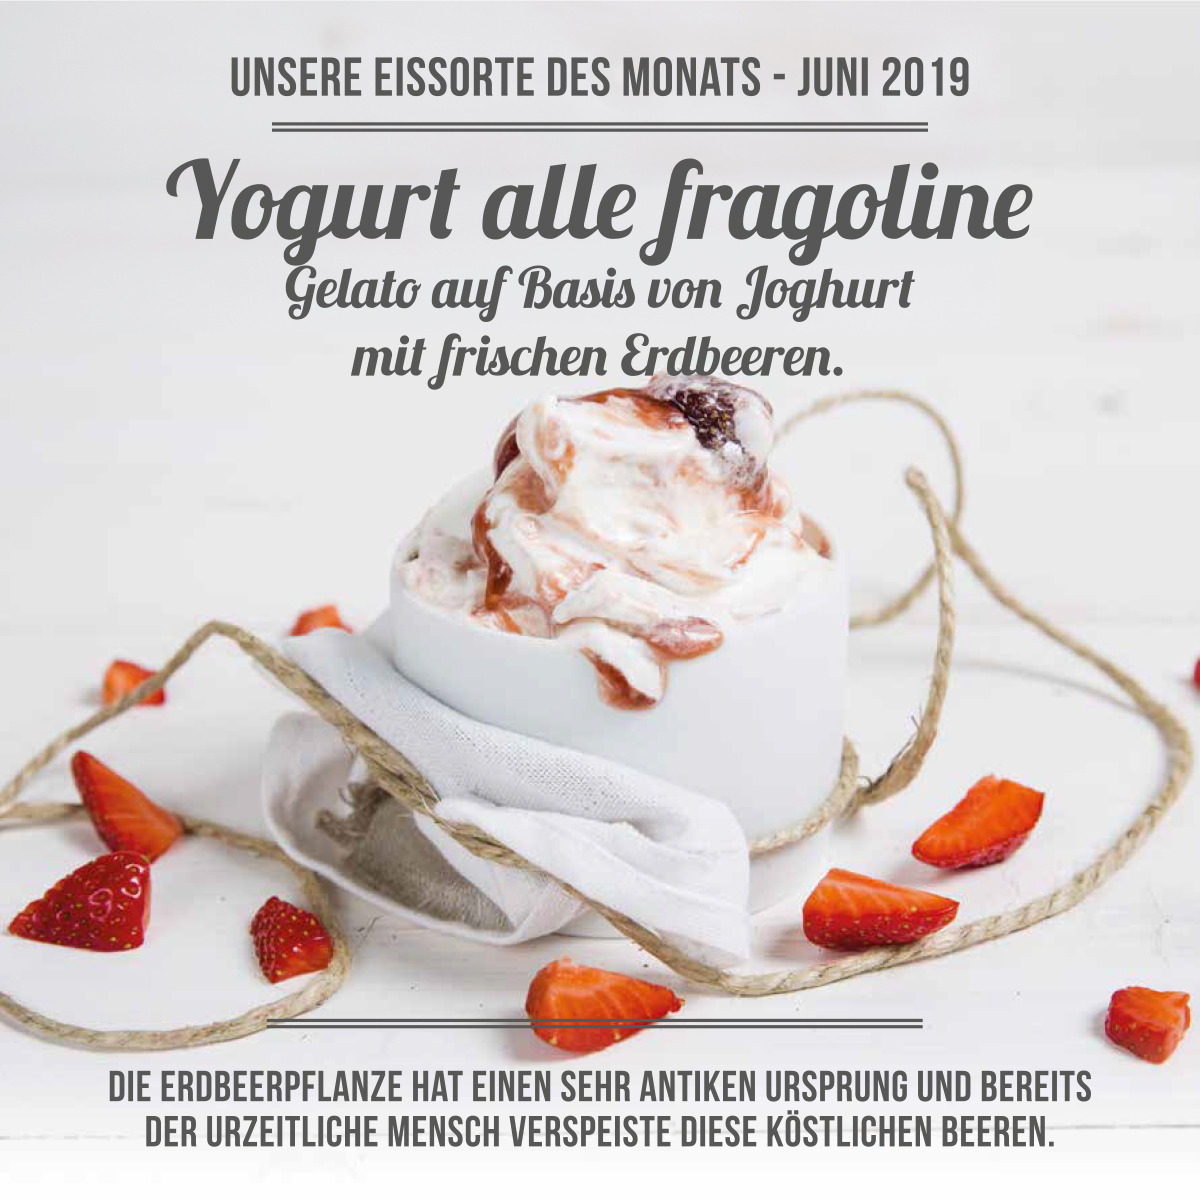 Yogurt alle fragoline